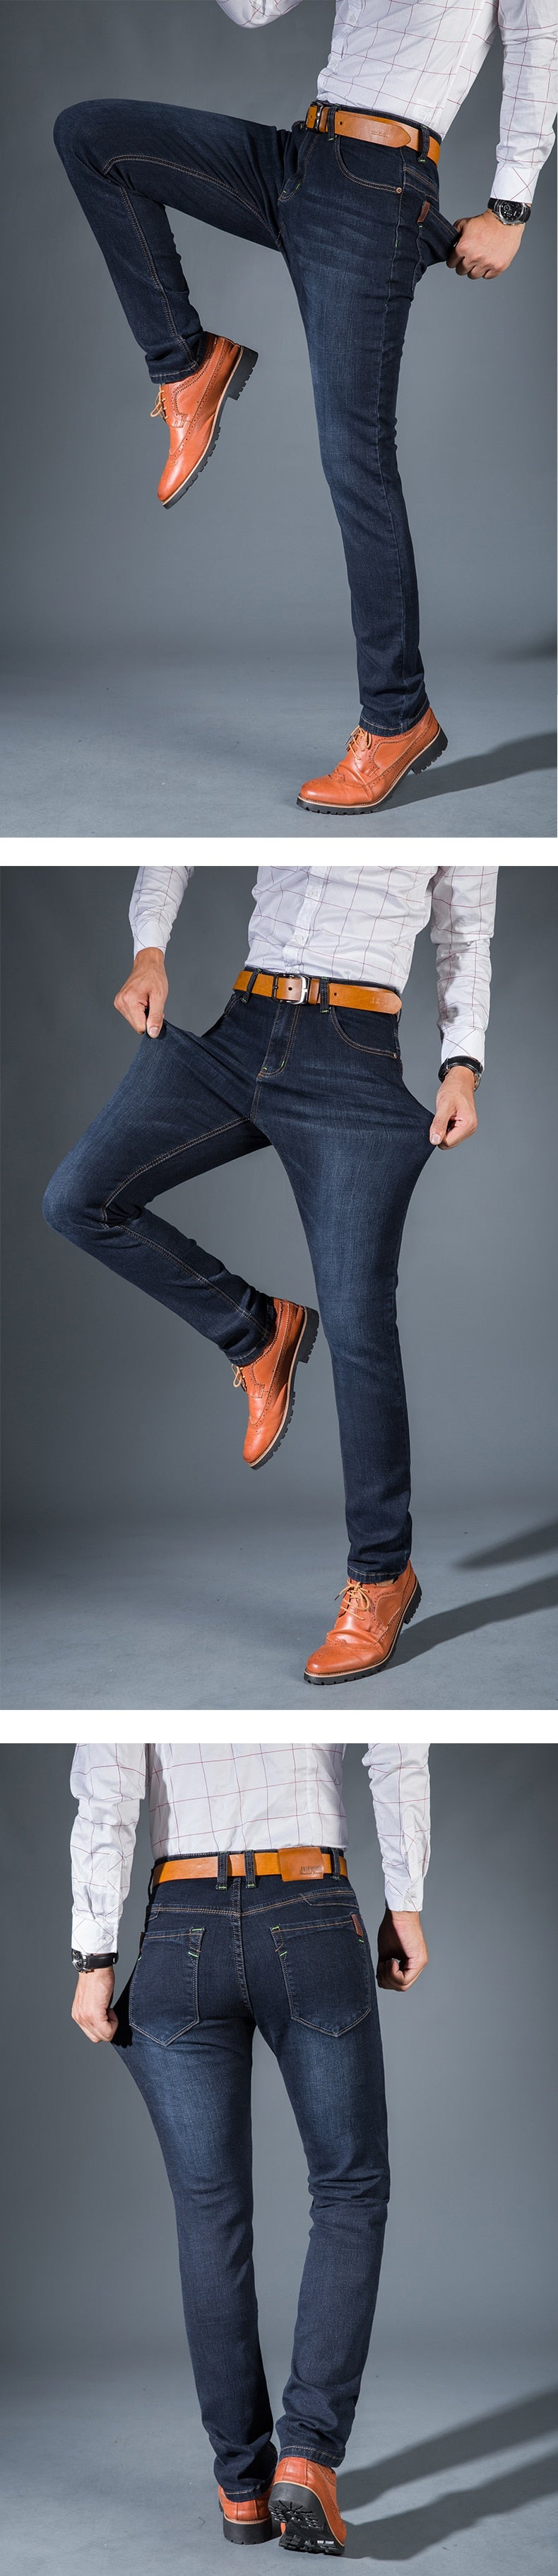 3203209ee6aef Vomint Men's Jeans High Stretch Fashion Black Blue Denim Brand Men Slim Fit  Jeans Size 30